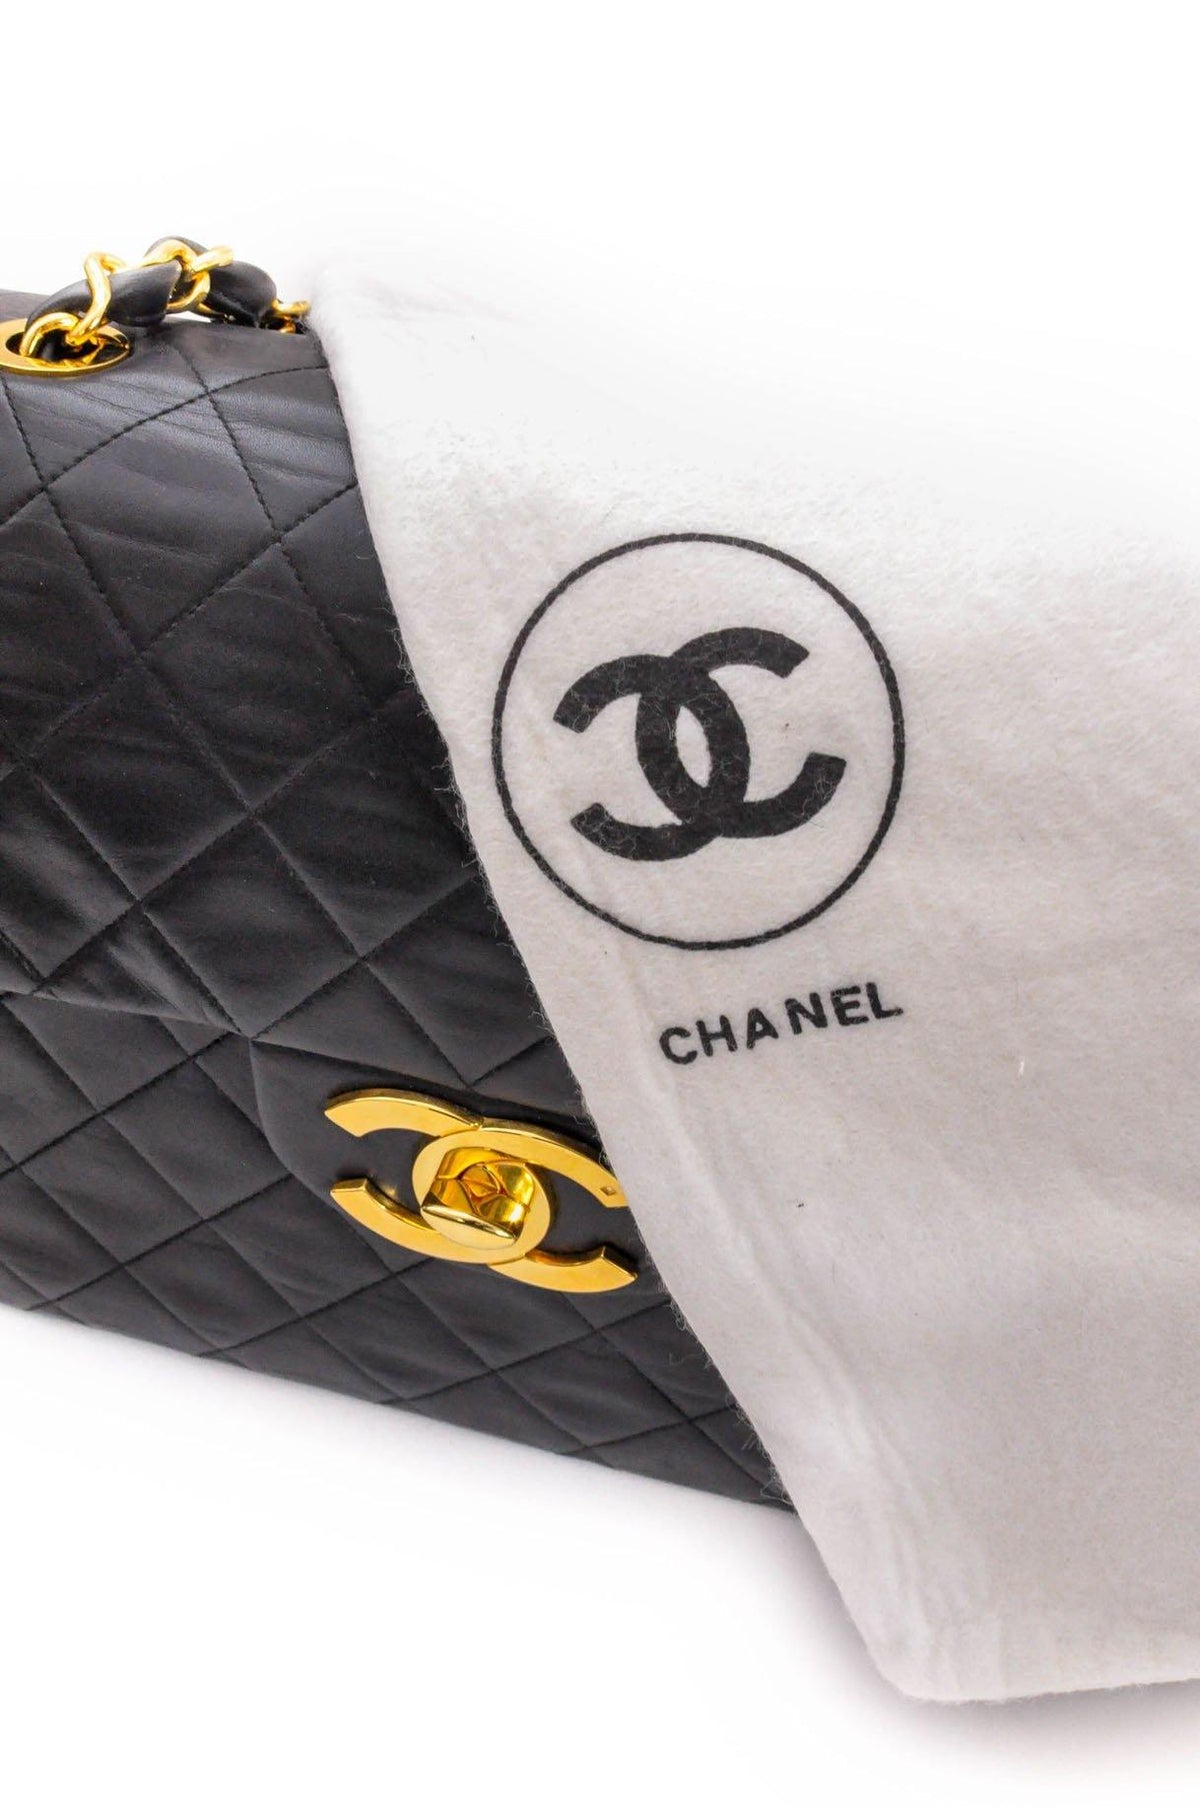 Vintage Chanel Jumbo Flapbag from Sweet and Spark